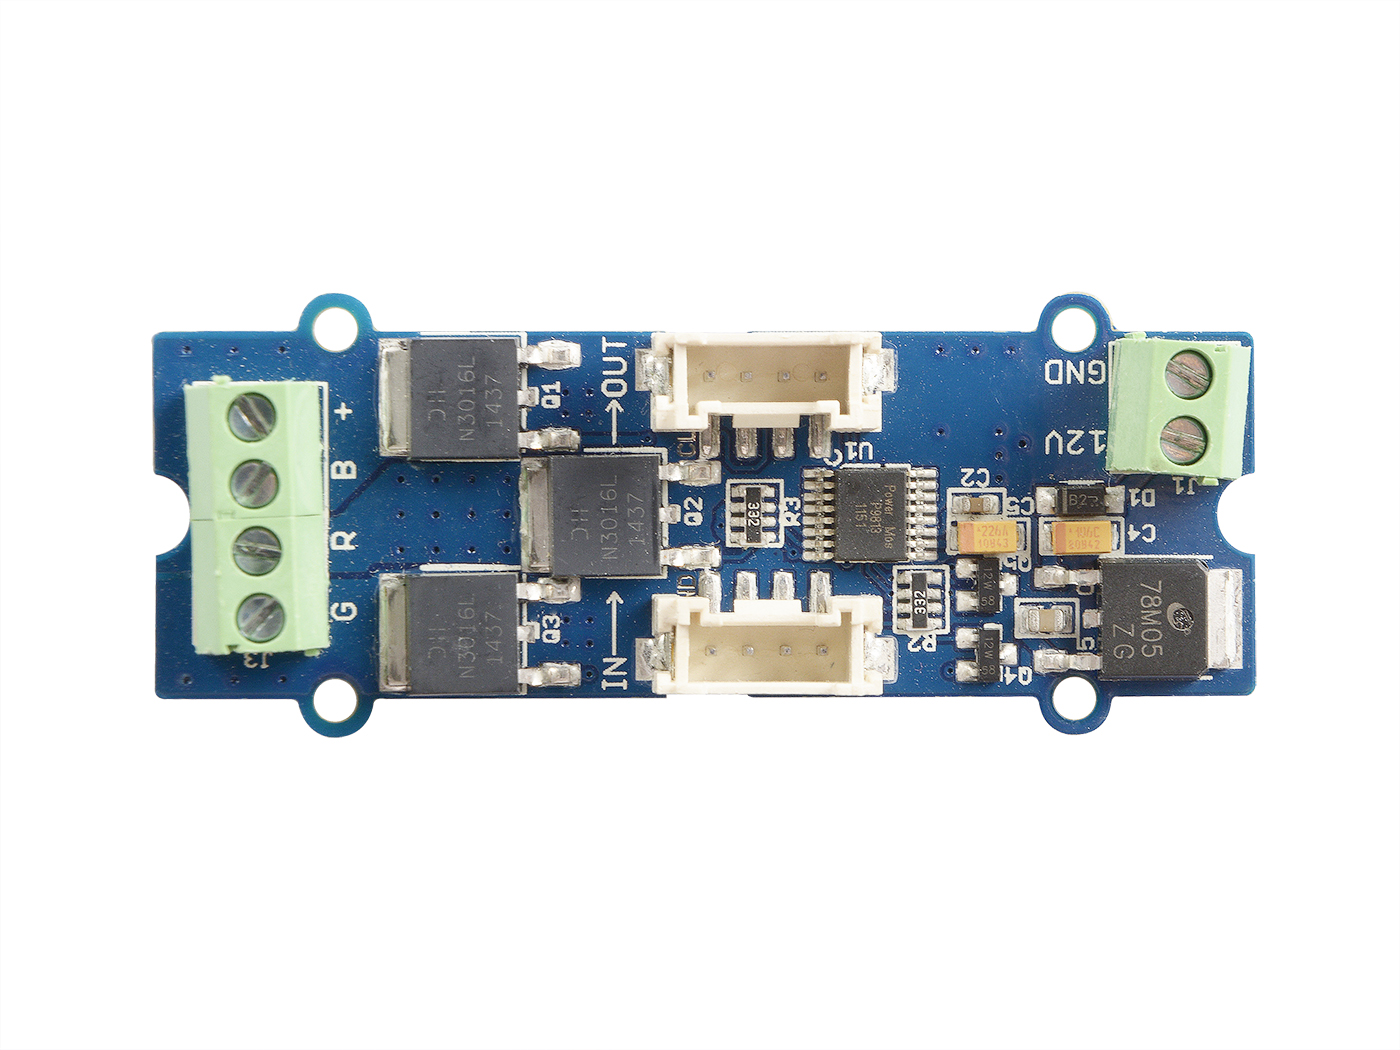 Grove Led Strip Driver Actuator Seeed Studio Rgb Chip Application Circuit With I2c Interface